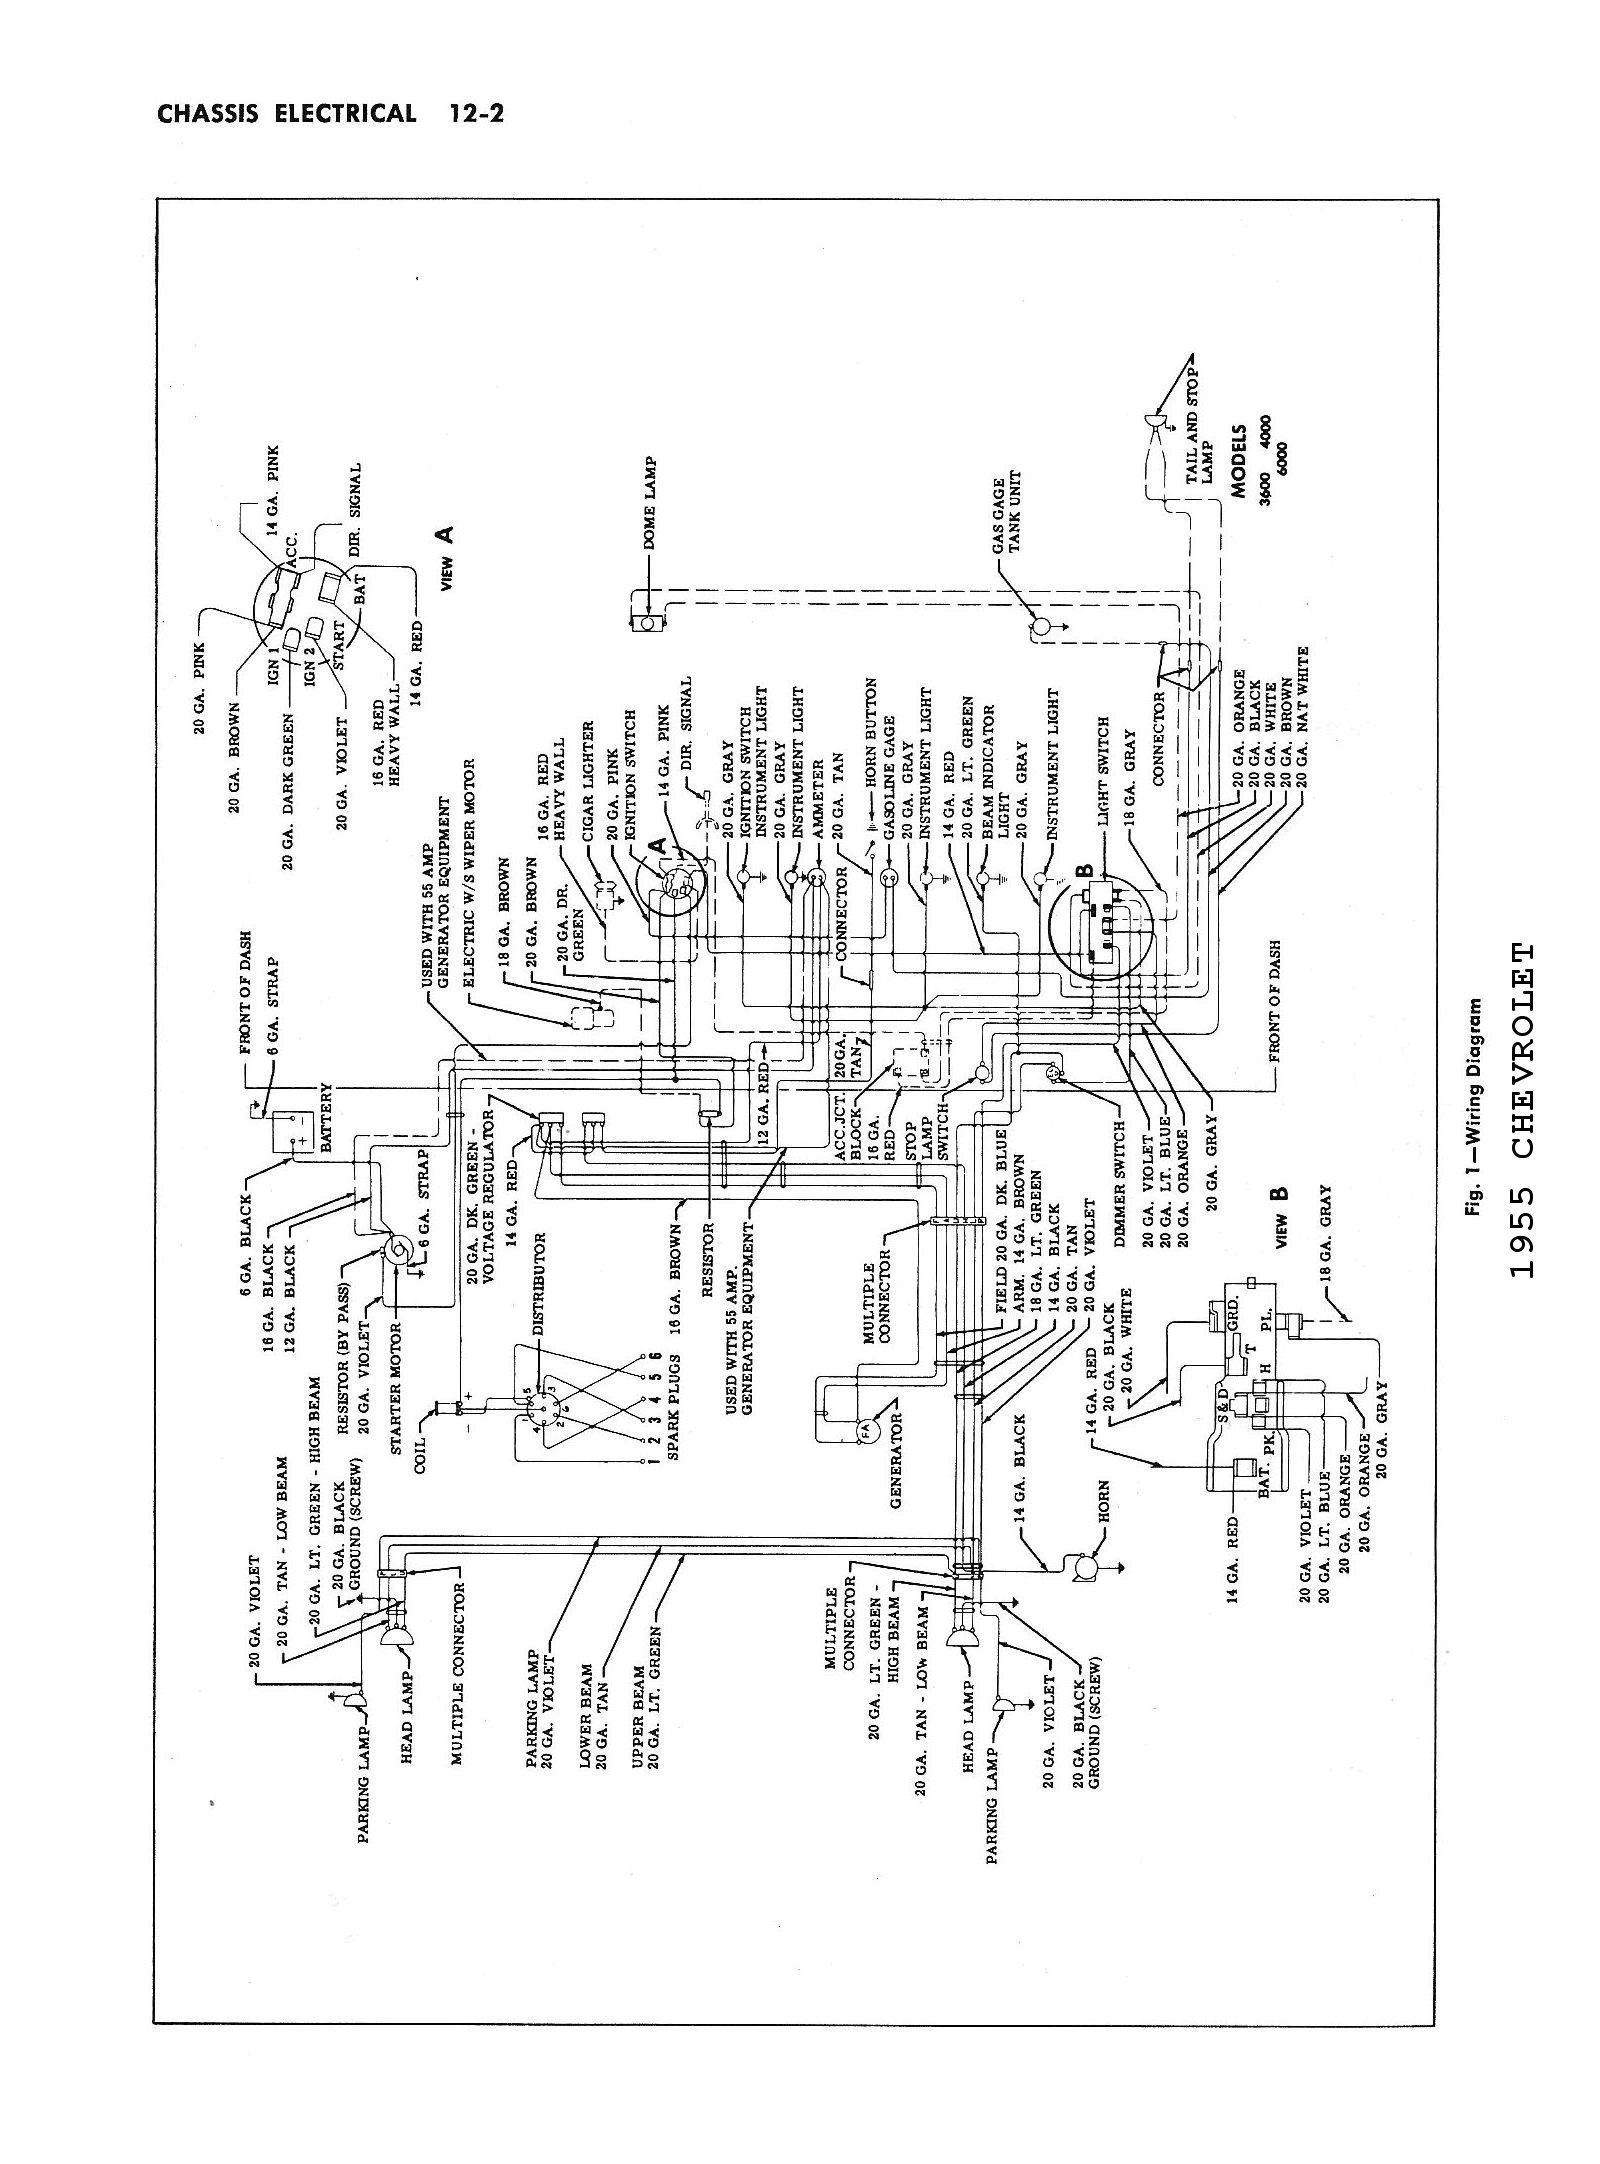 hight resolution of 55 chevy belair wiring diagram free picture wiring diagram source 48 chevy wiring diagram 55 chevy belair wiring diagram